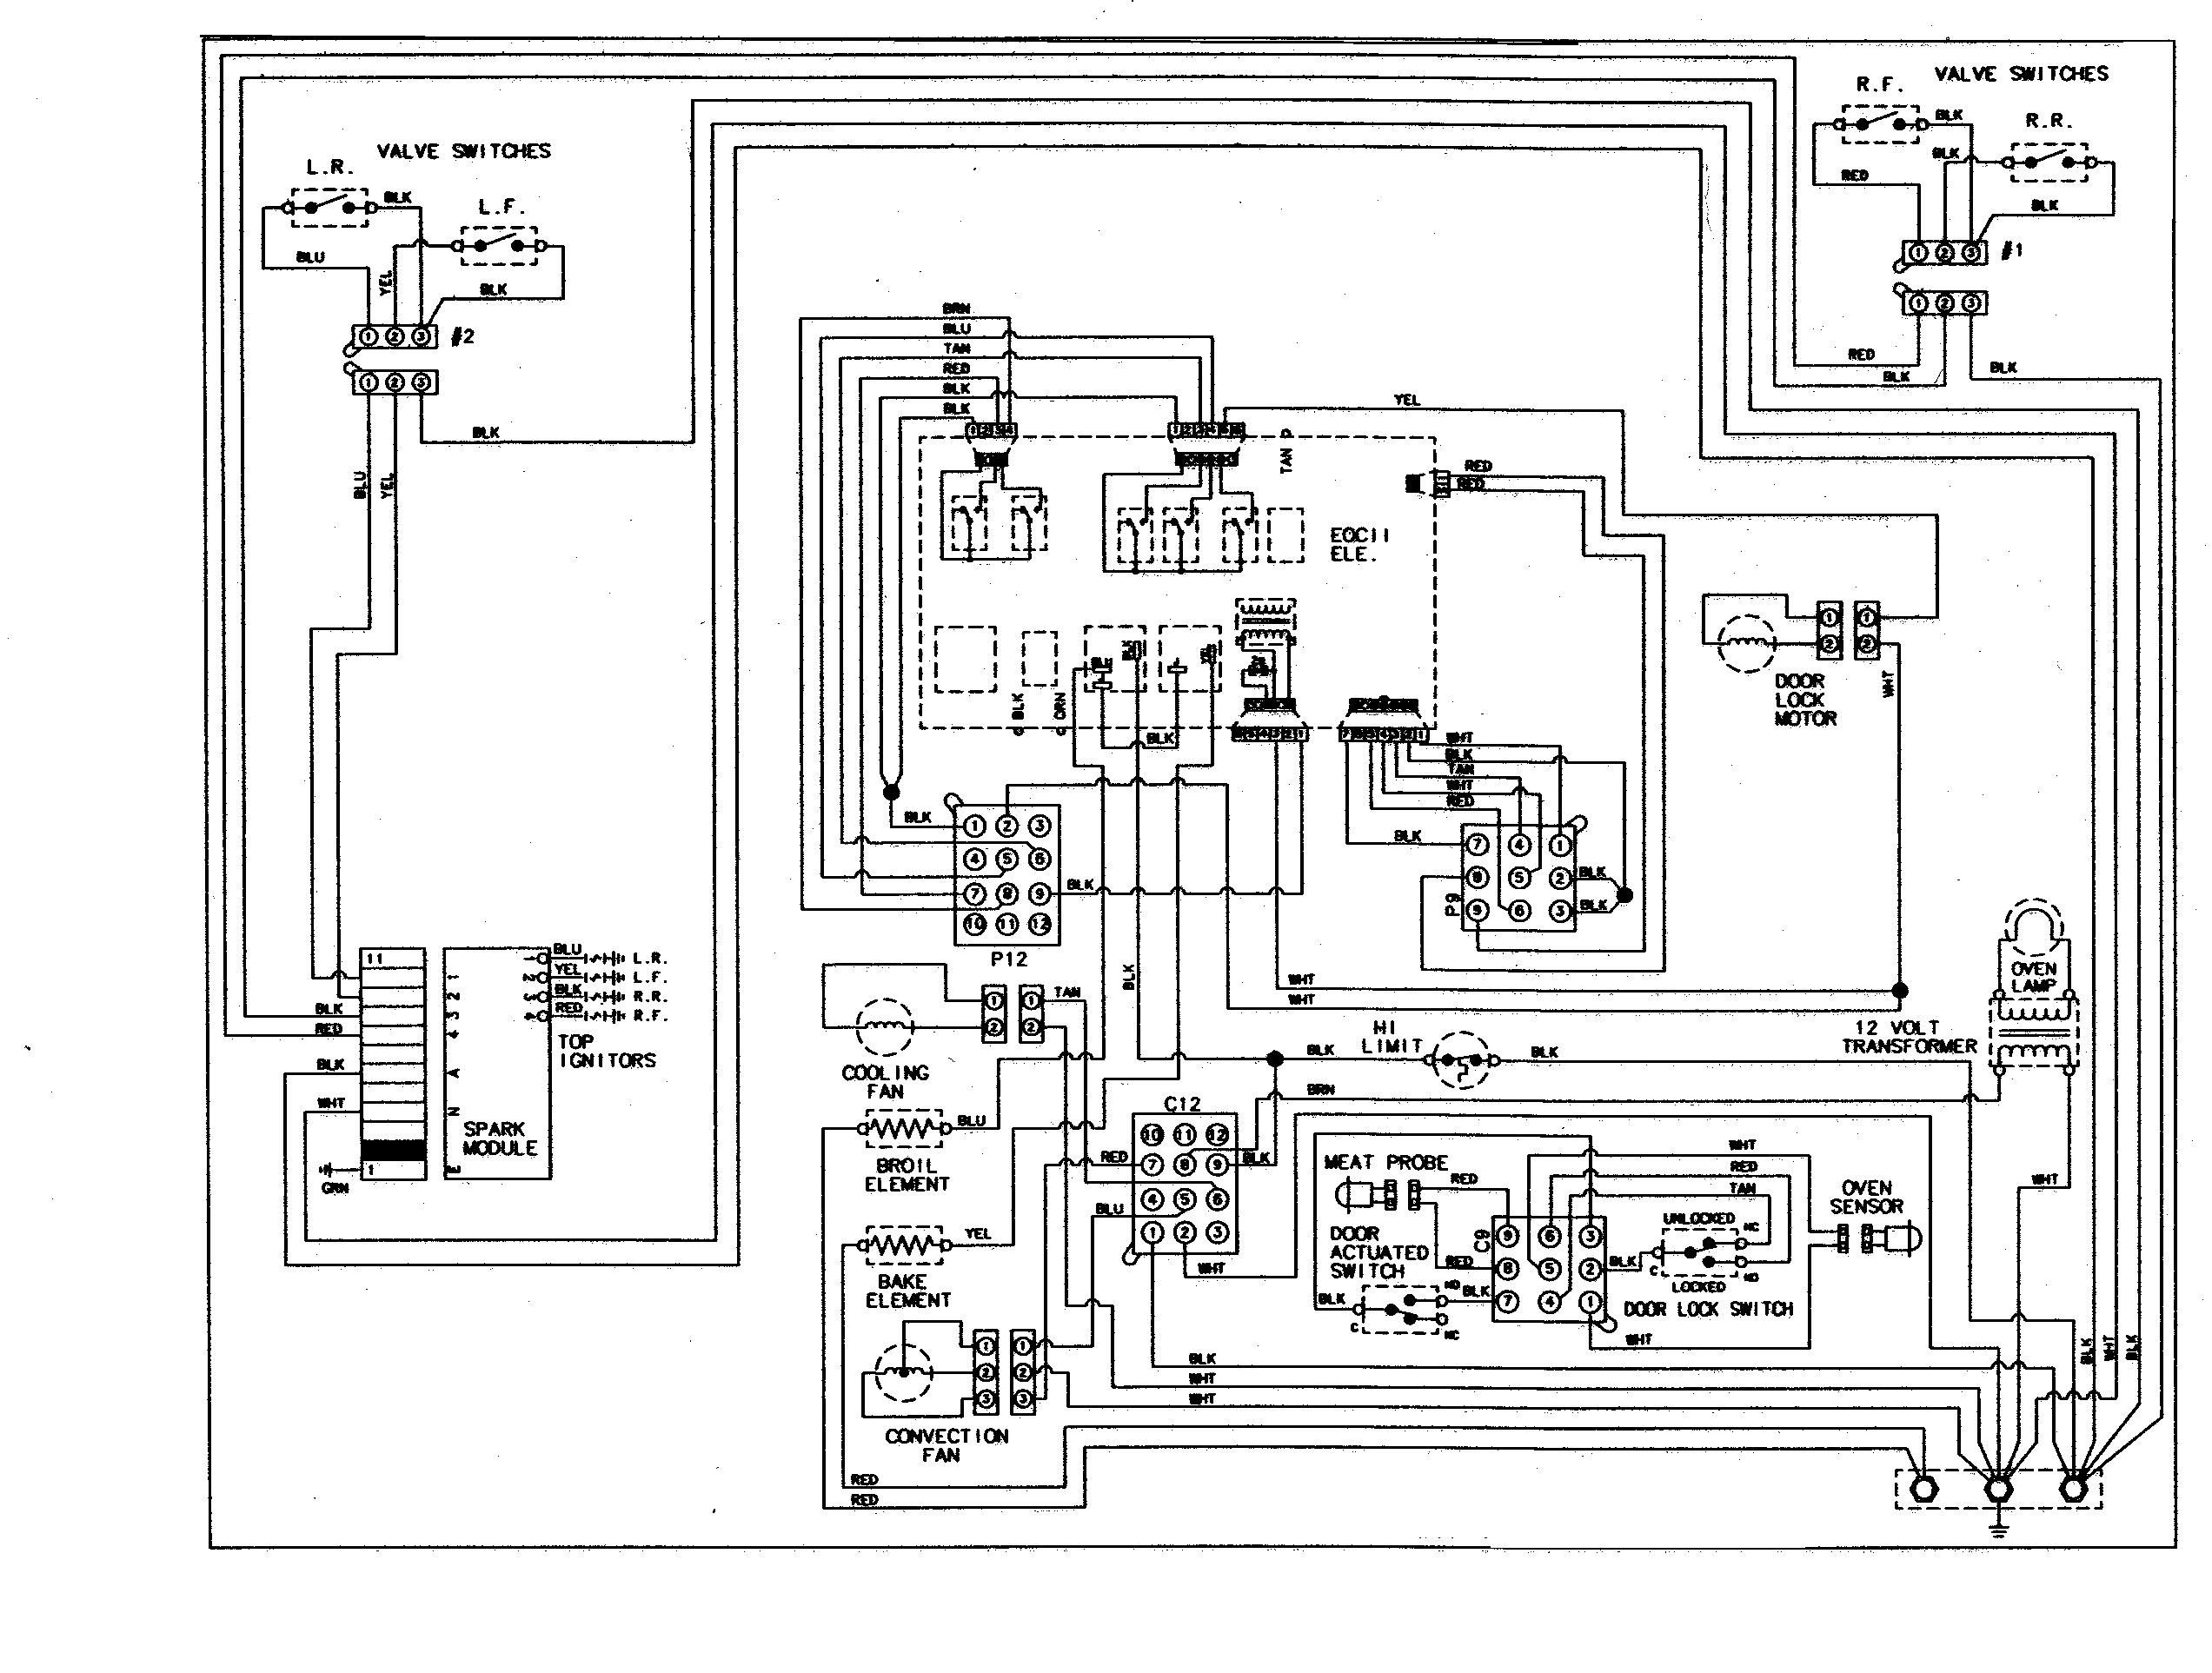 Schematic For Ge Oven Free Wiring Diagram You Profile Microwave Parts Stove 23 Images Instructions Roaster